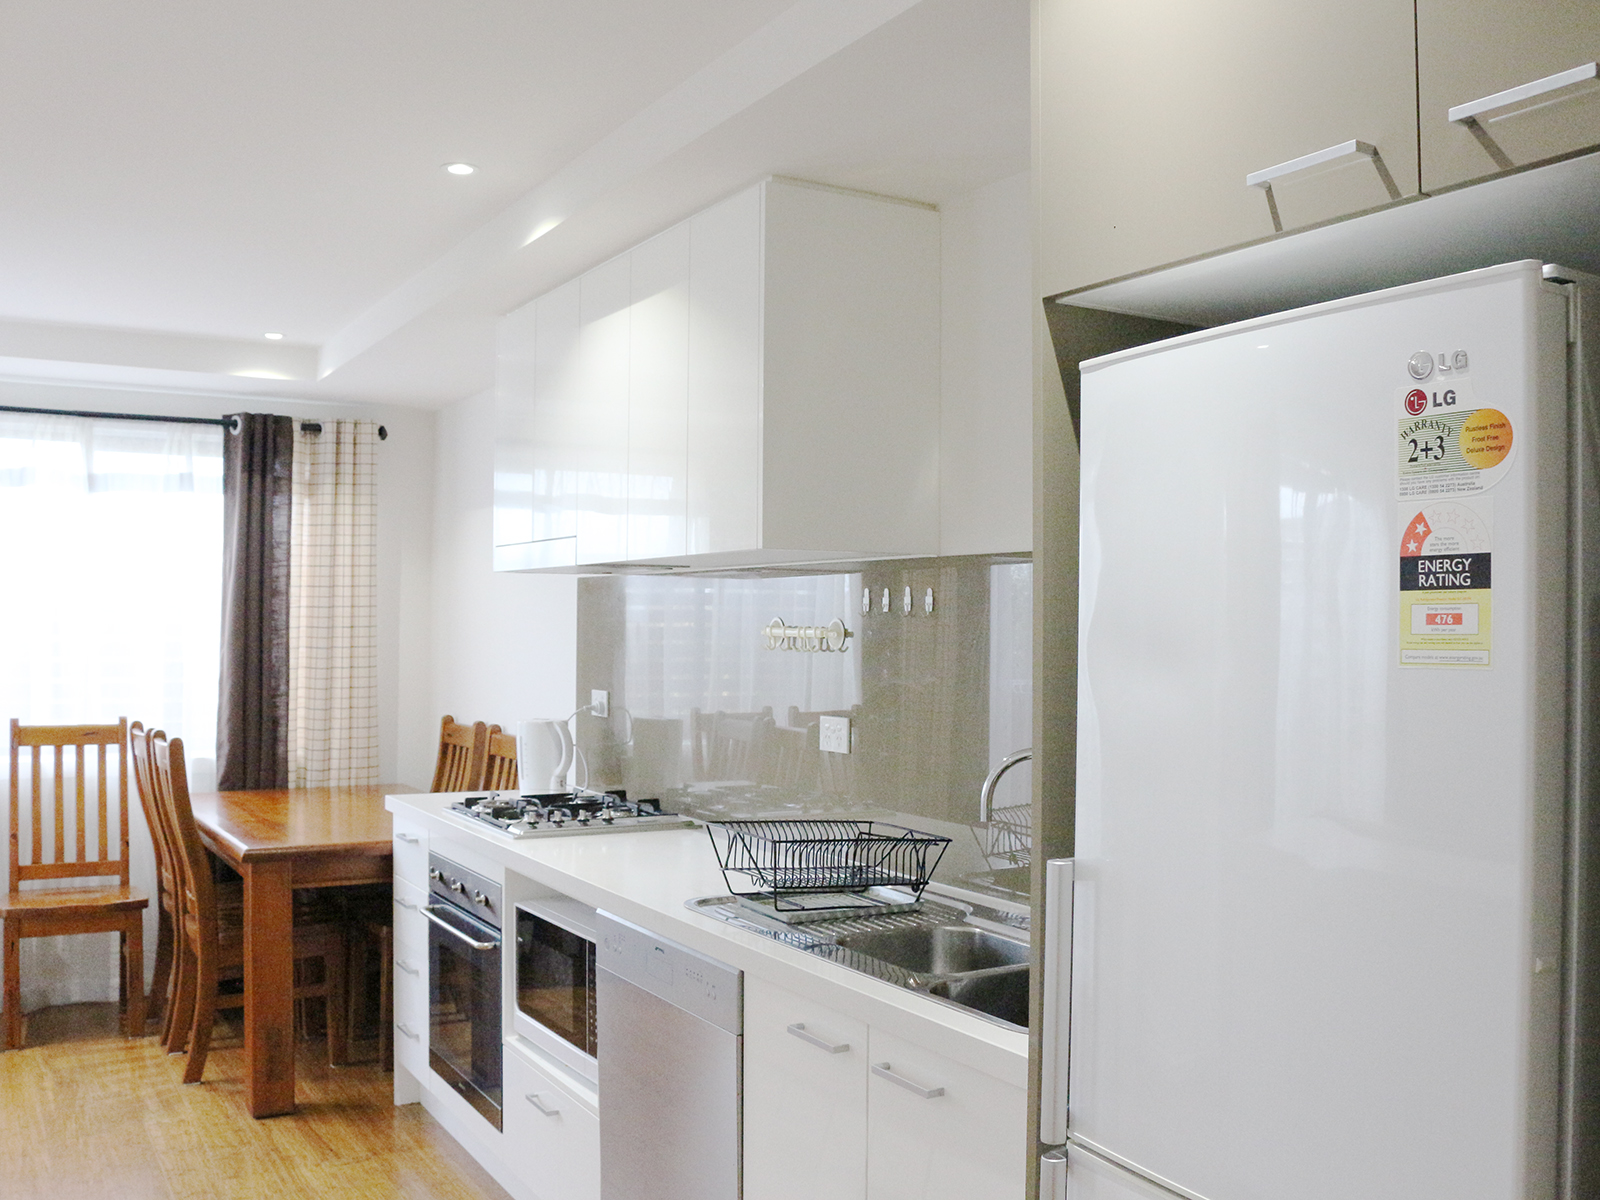 HonorBond Mt Waverley kitchen